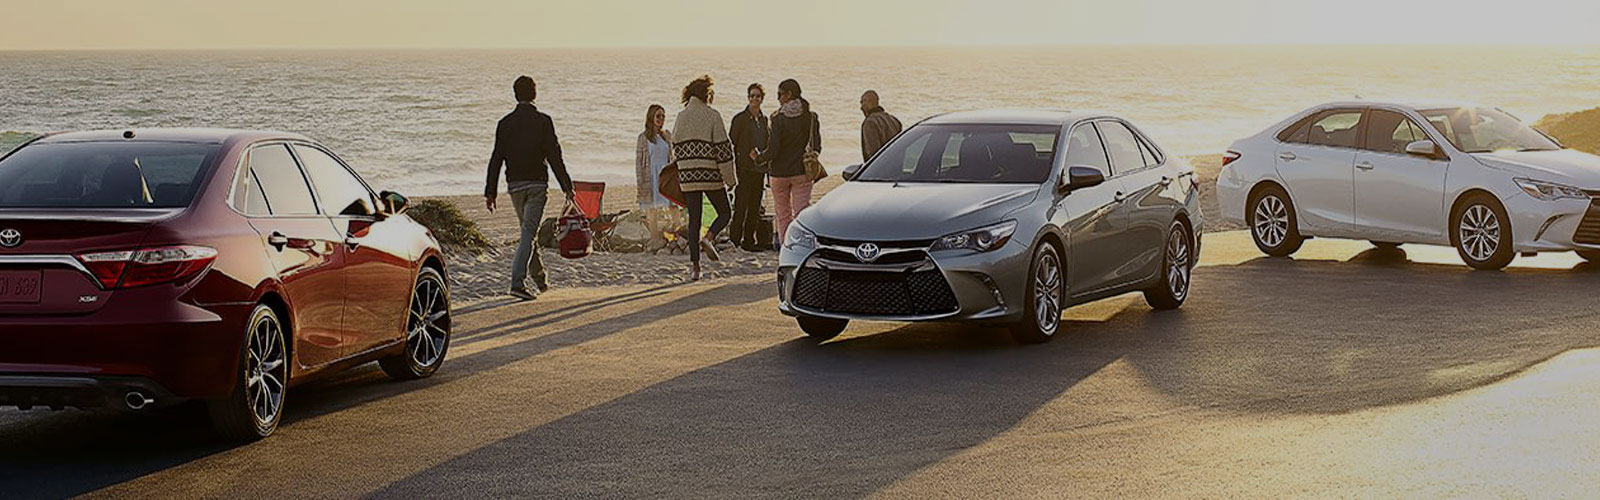 Toyotas and young people at the beach.